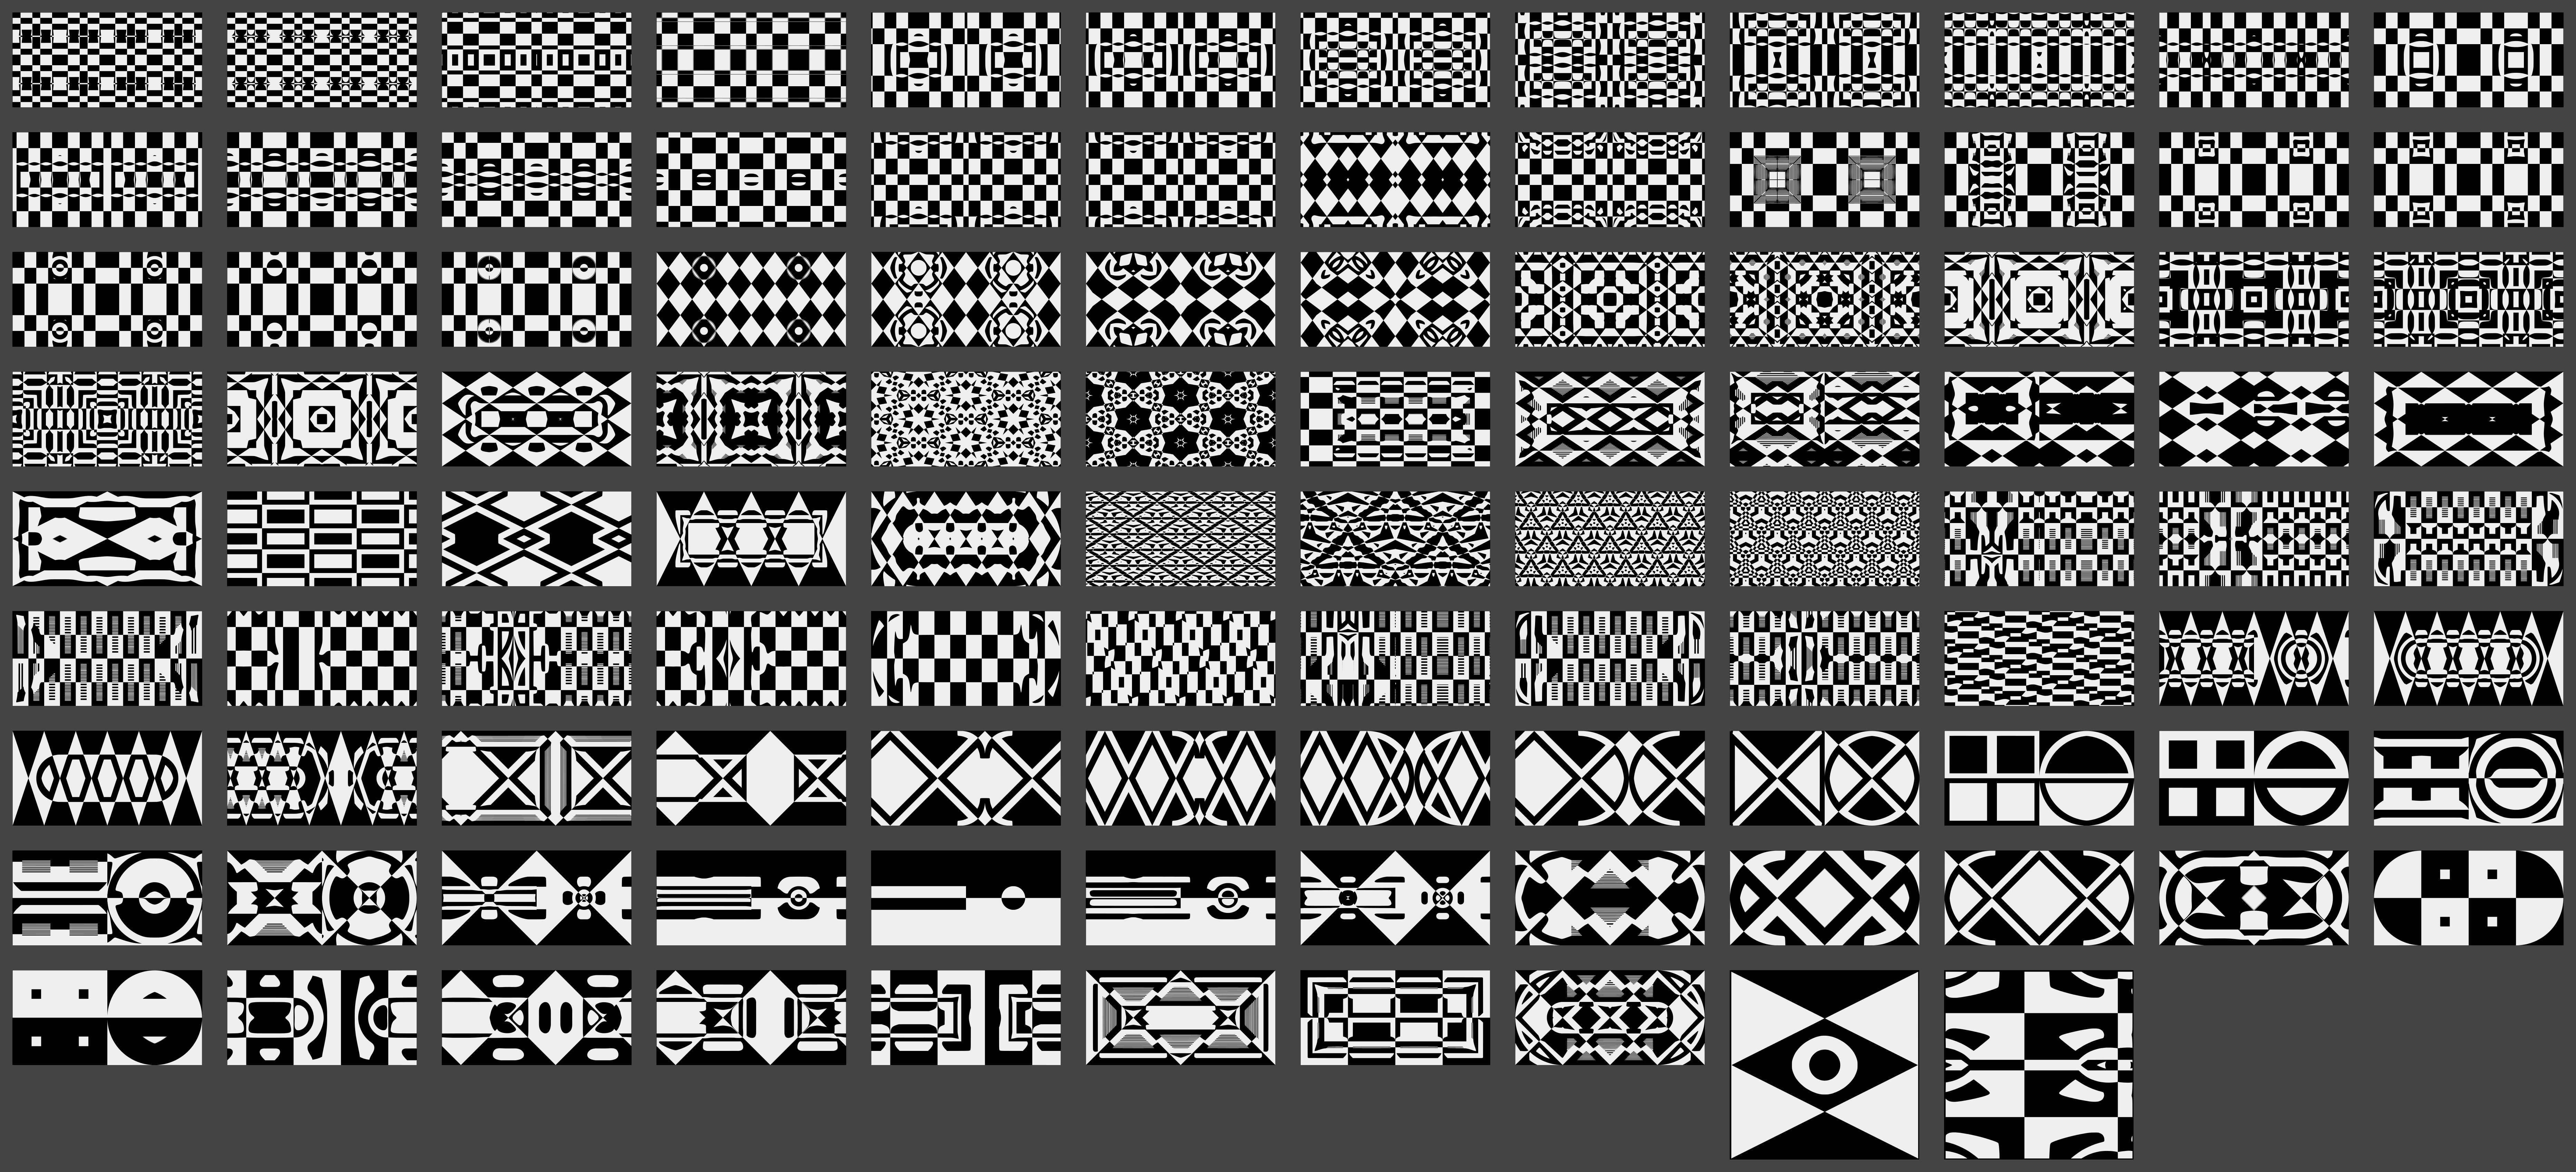 Contact sheet for work 00098 106 geometric patterns from